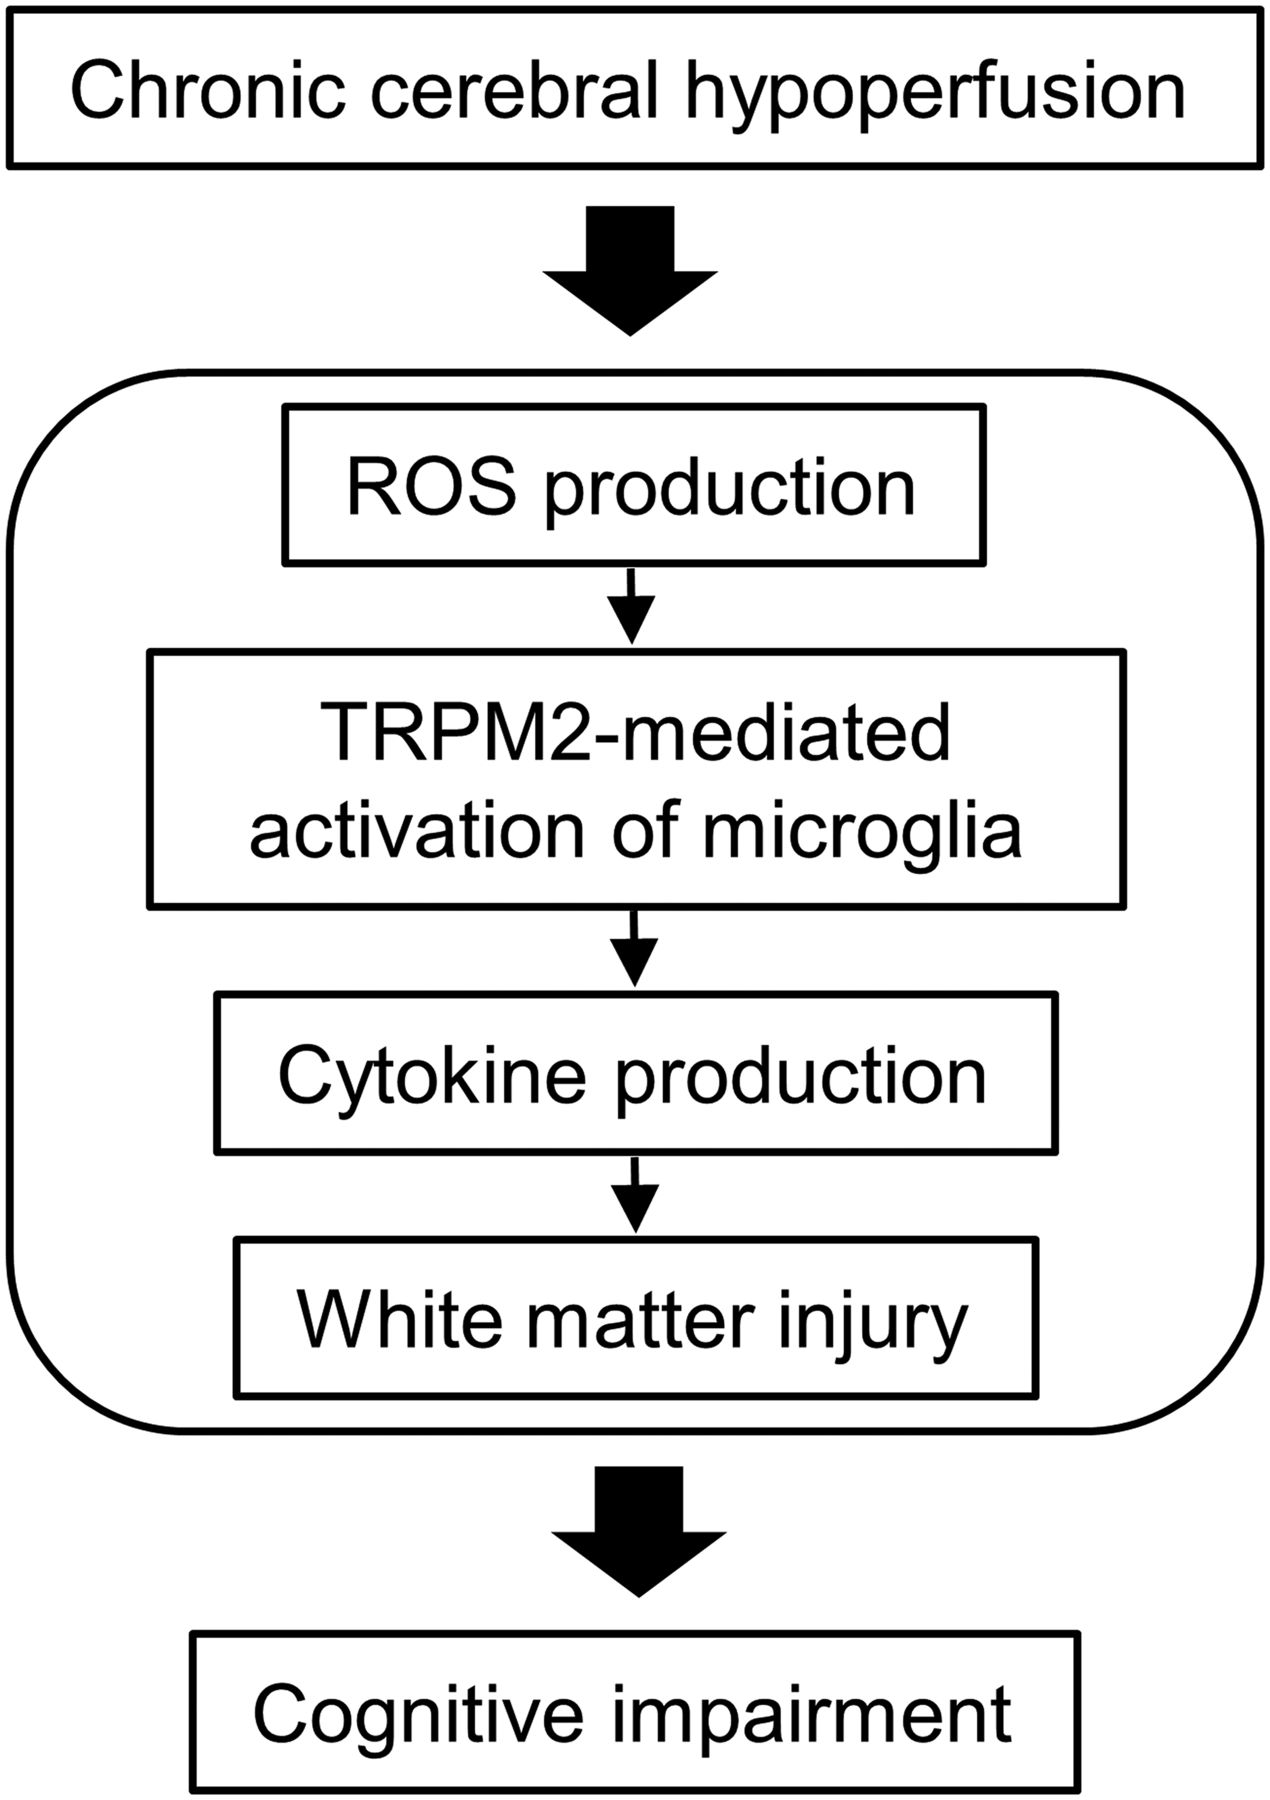 TRPM2 Channel Aggravates CNS Inflammation and Cognitive Impairment